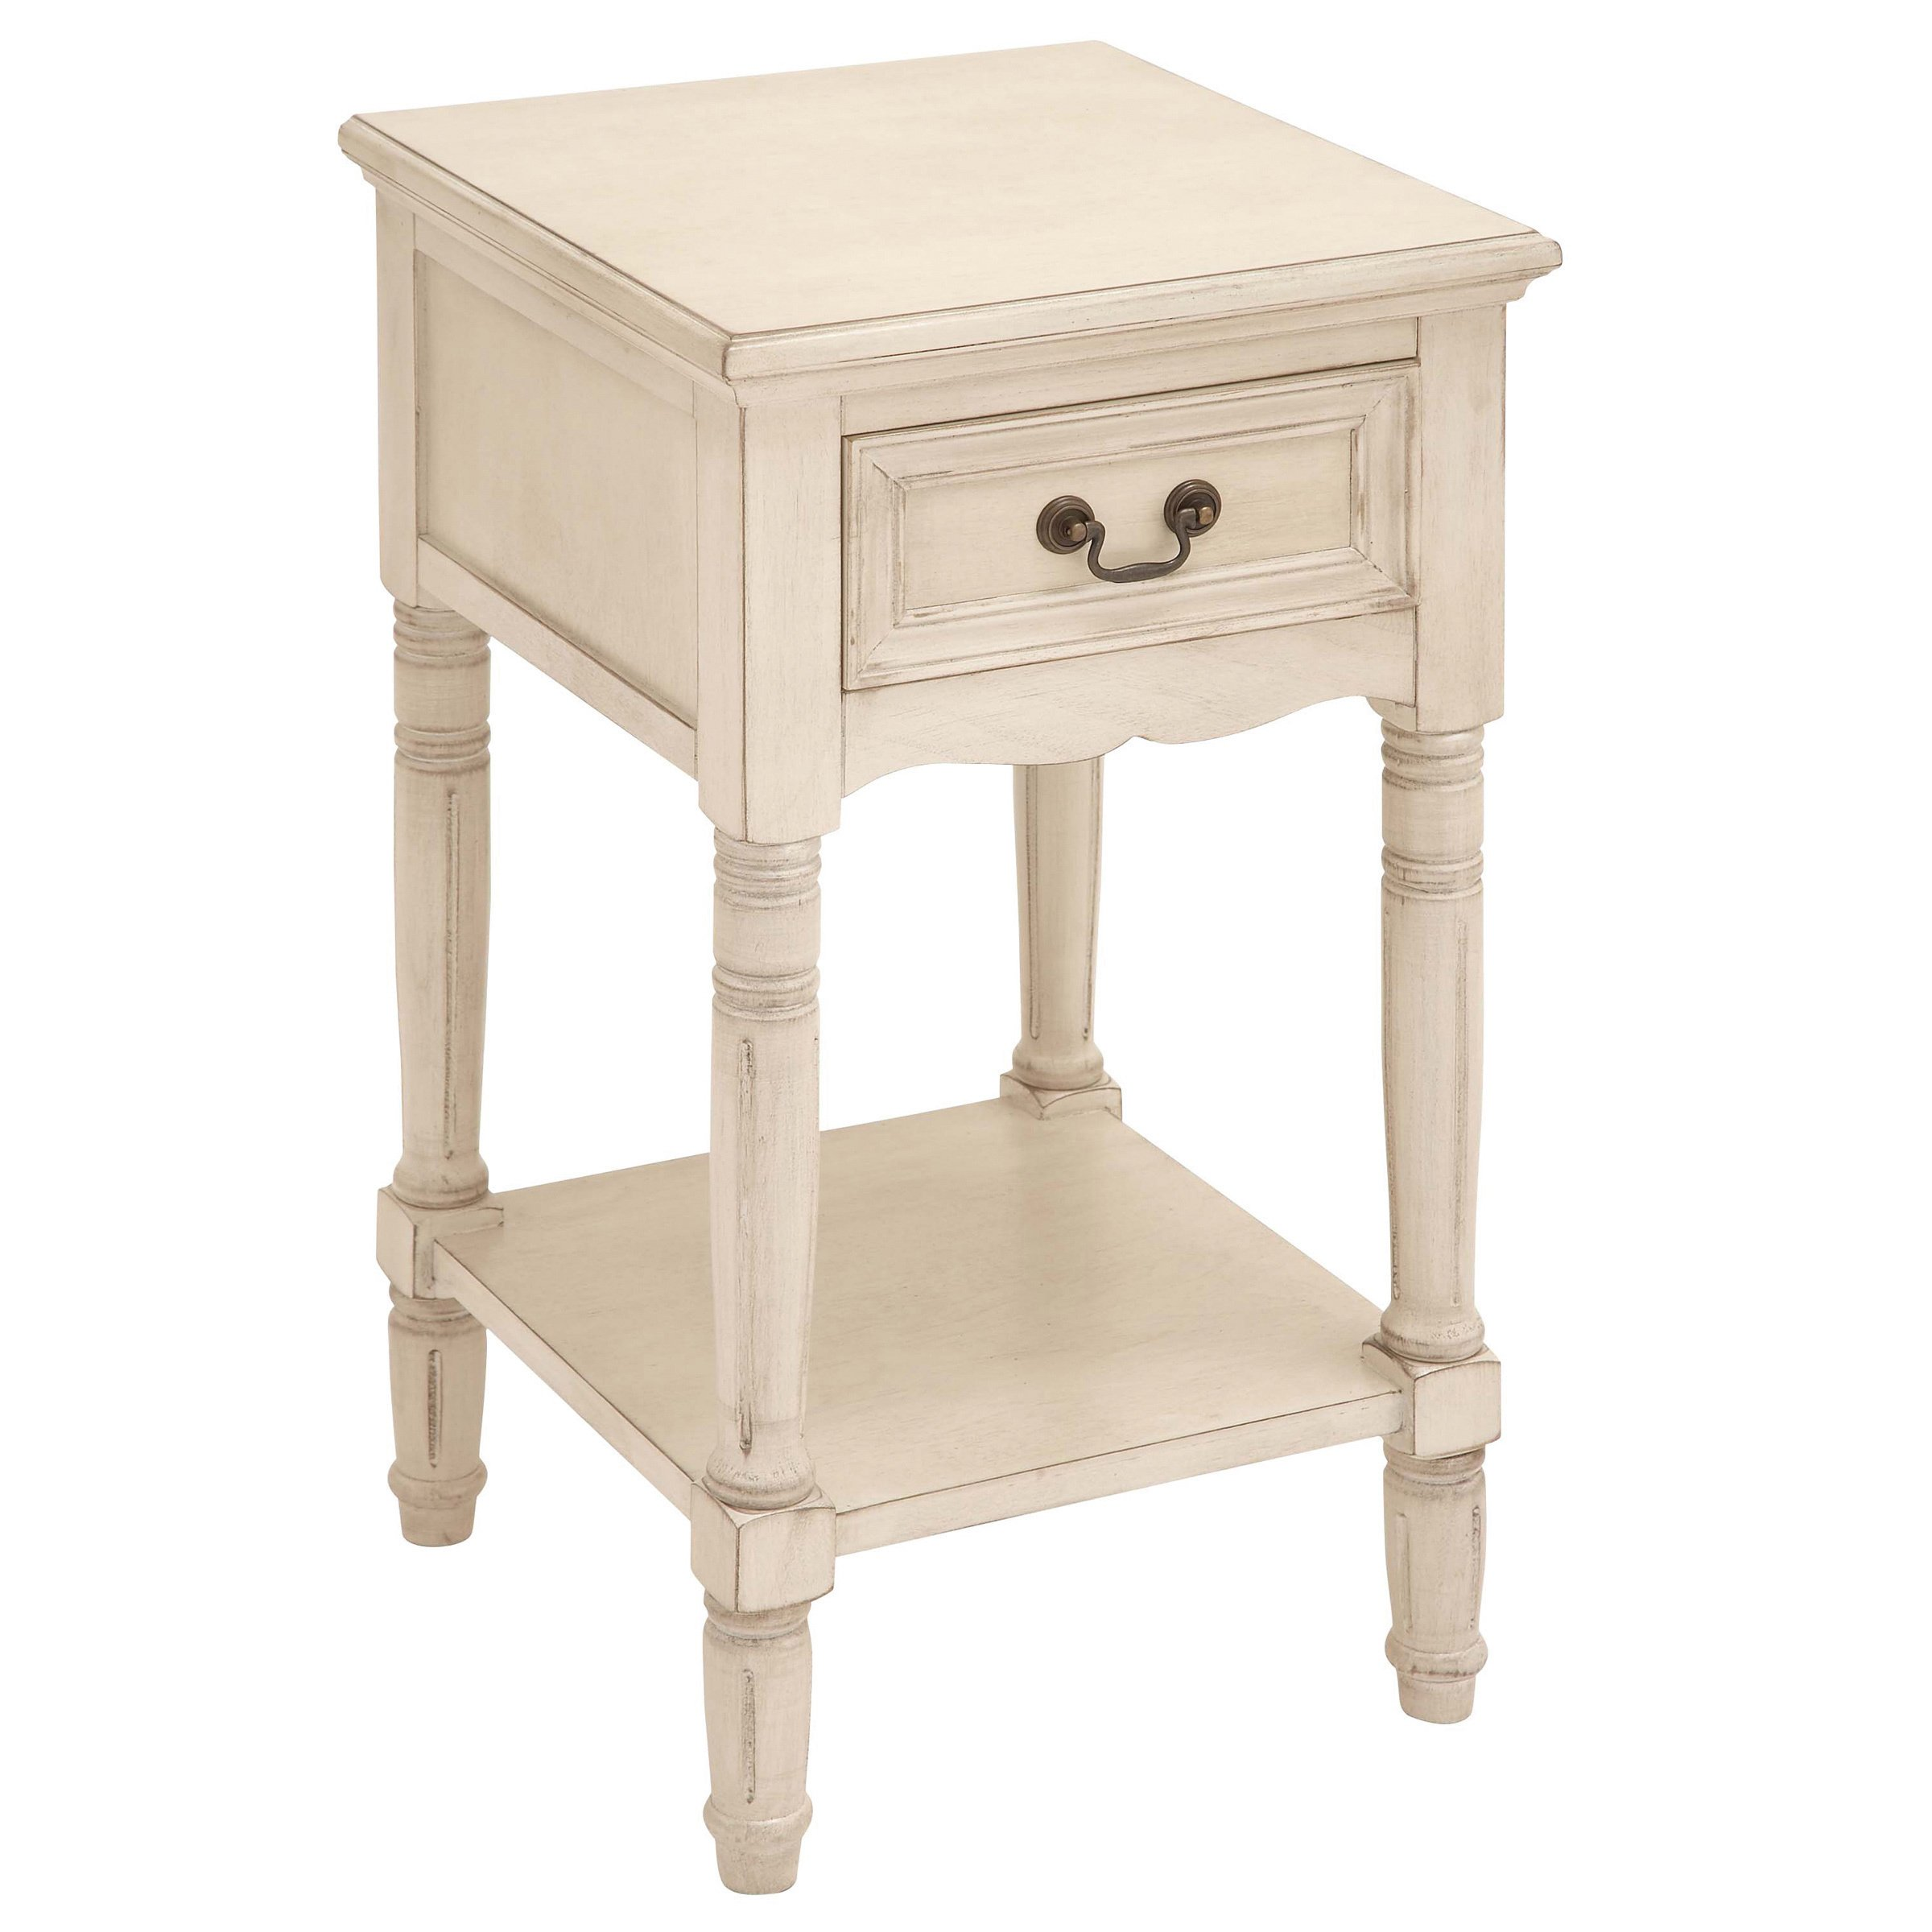 antiqued solid wood accent table night stand free shipping tables furniture side narrow white gallerie locations square clock small clear weathered teak coffee sofa and chair set